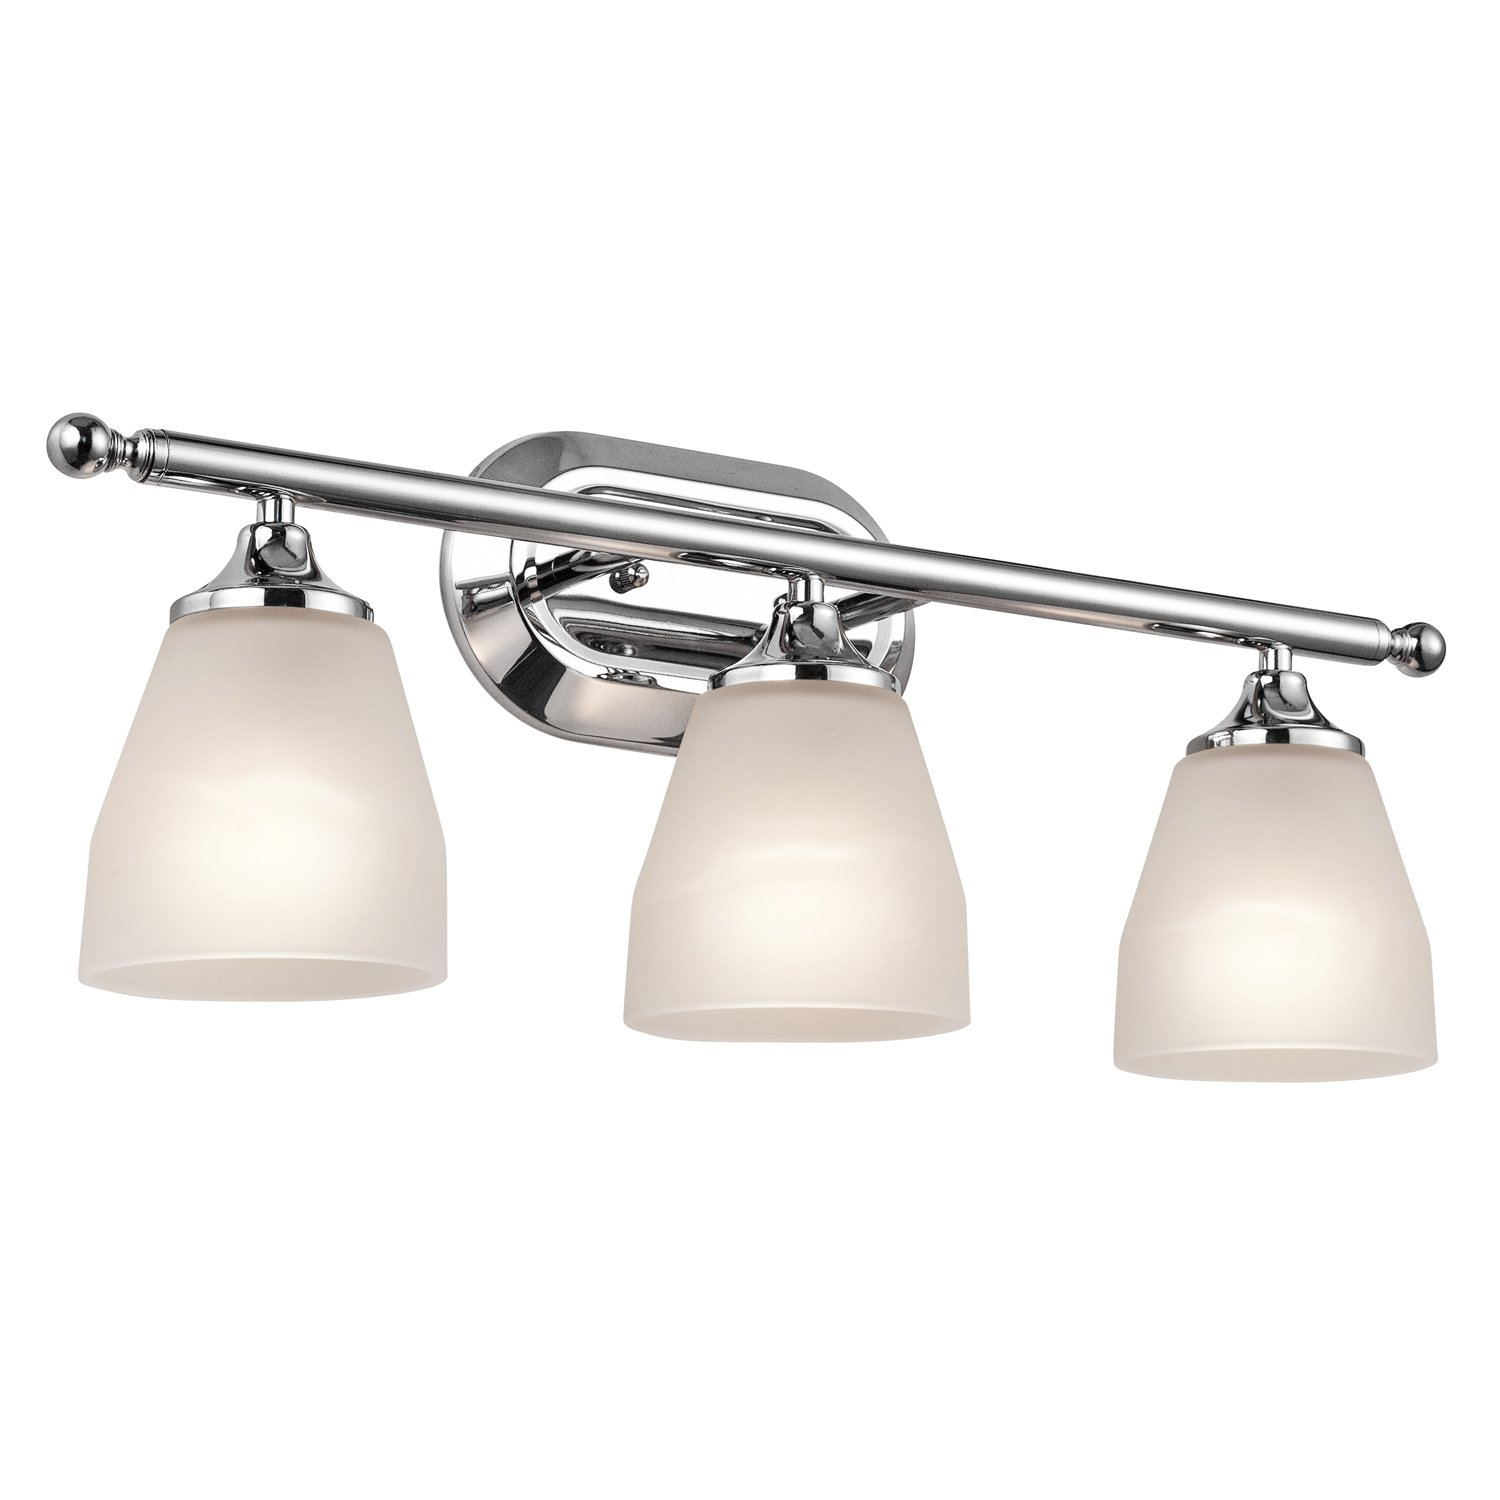 Kichler 5449NI Four Light Bath Vanity Lighting Fixtures Amazon